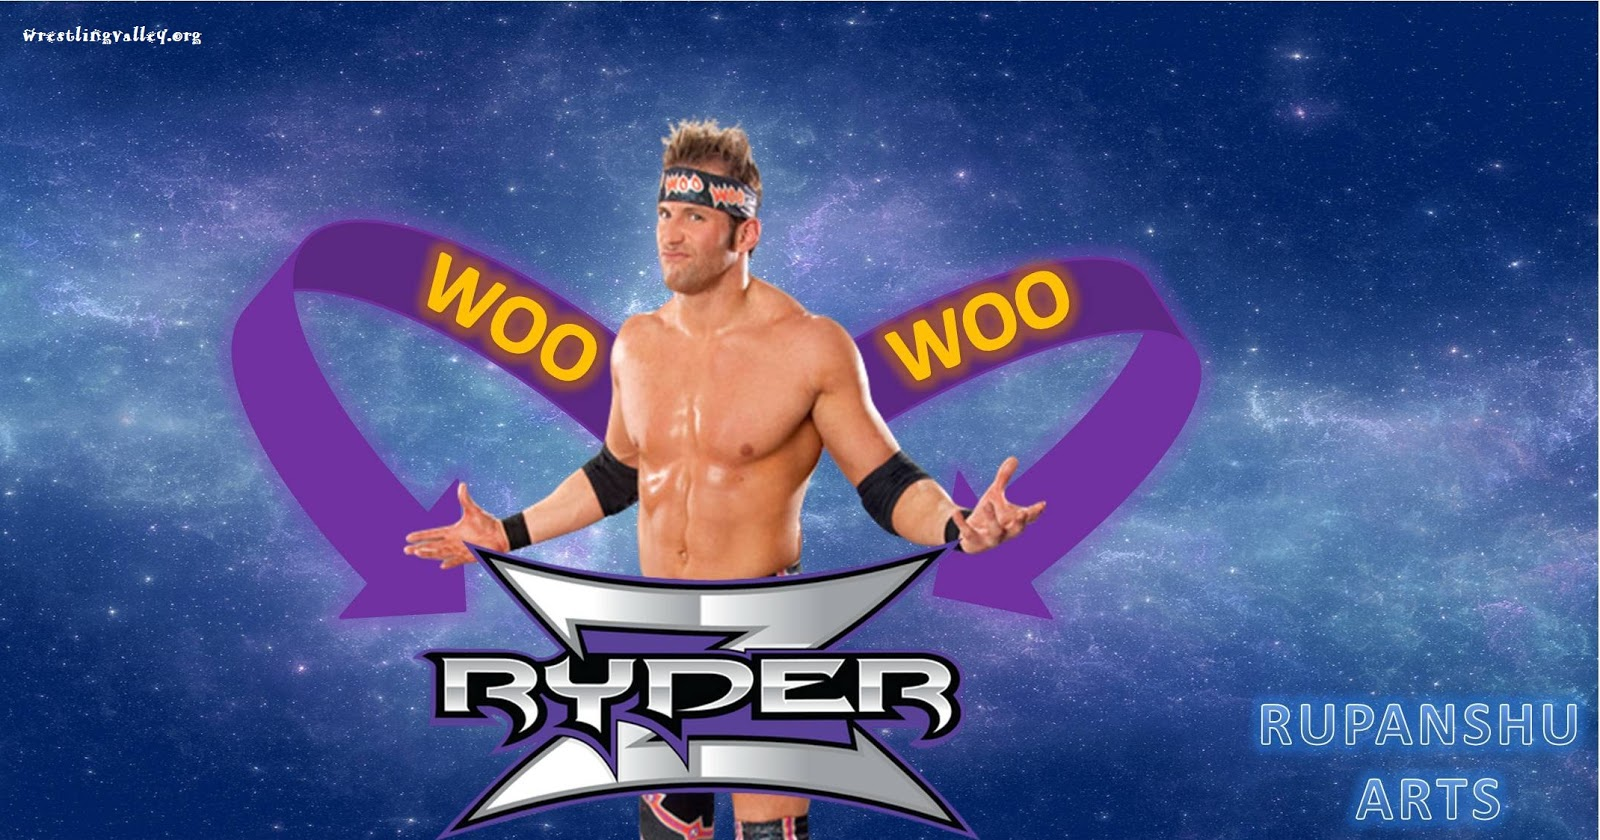 Wallpaper Pictures: WWE Zack Ryder Wallpaper